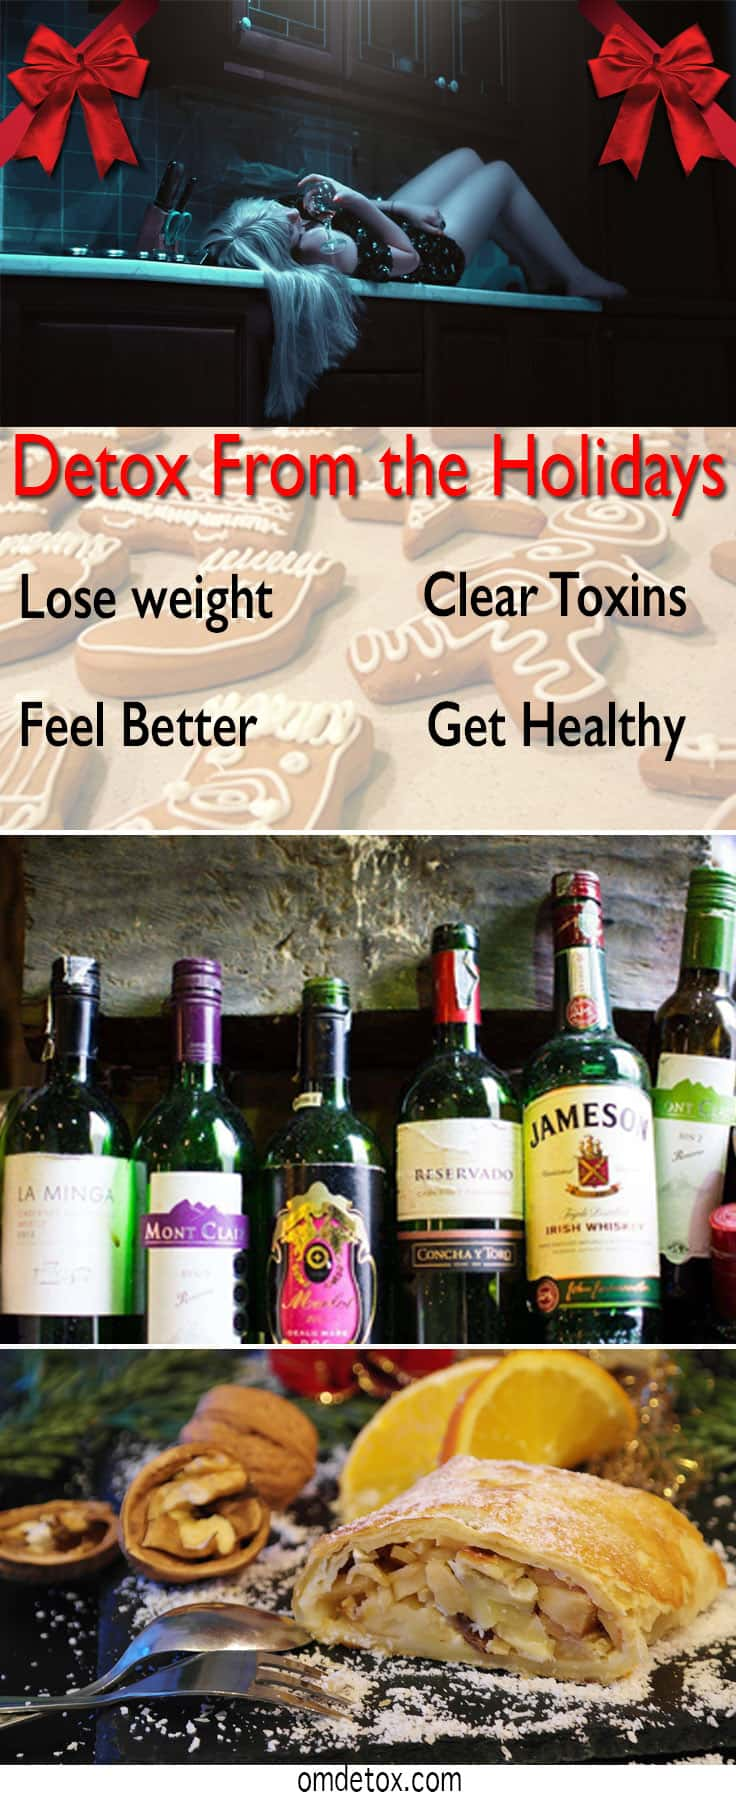 Holiday Detox in 5 easy steps! Easy weight loss program that will clear toxins and help digestion